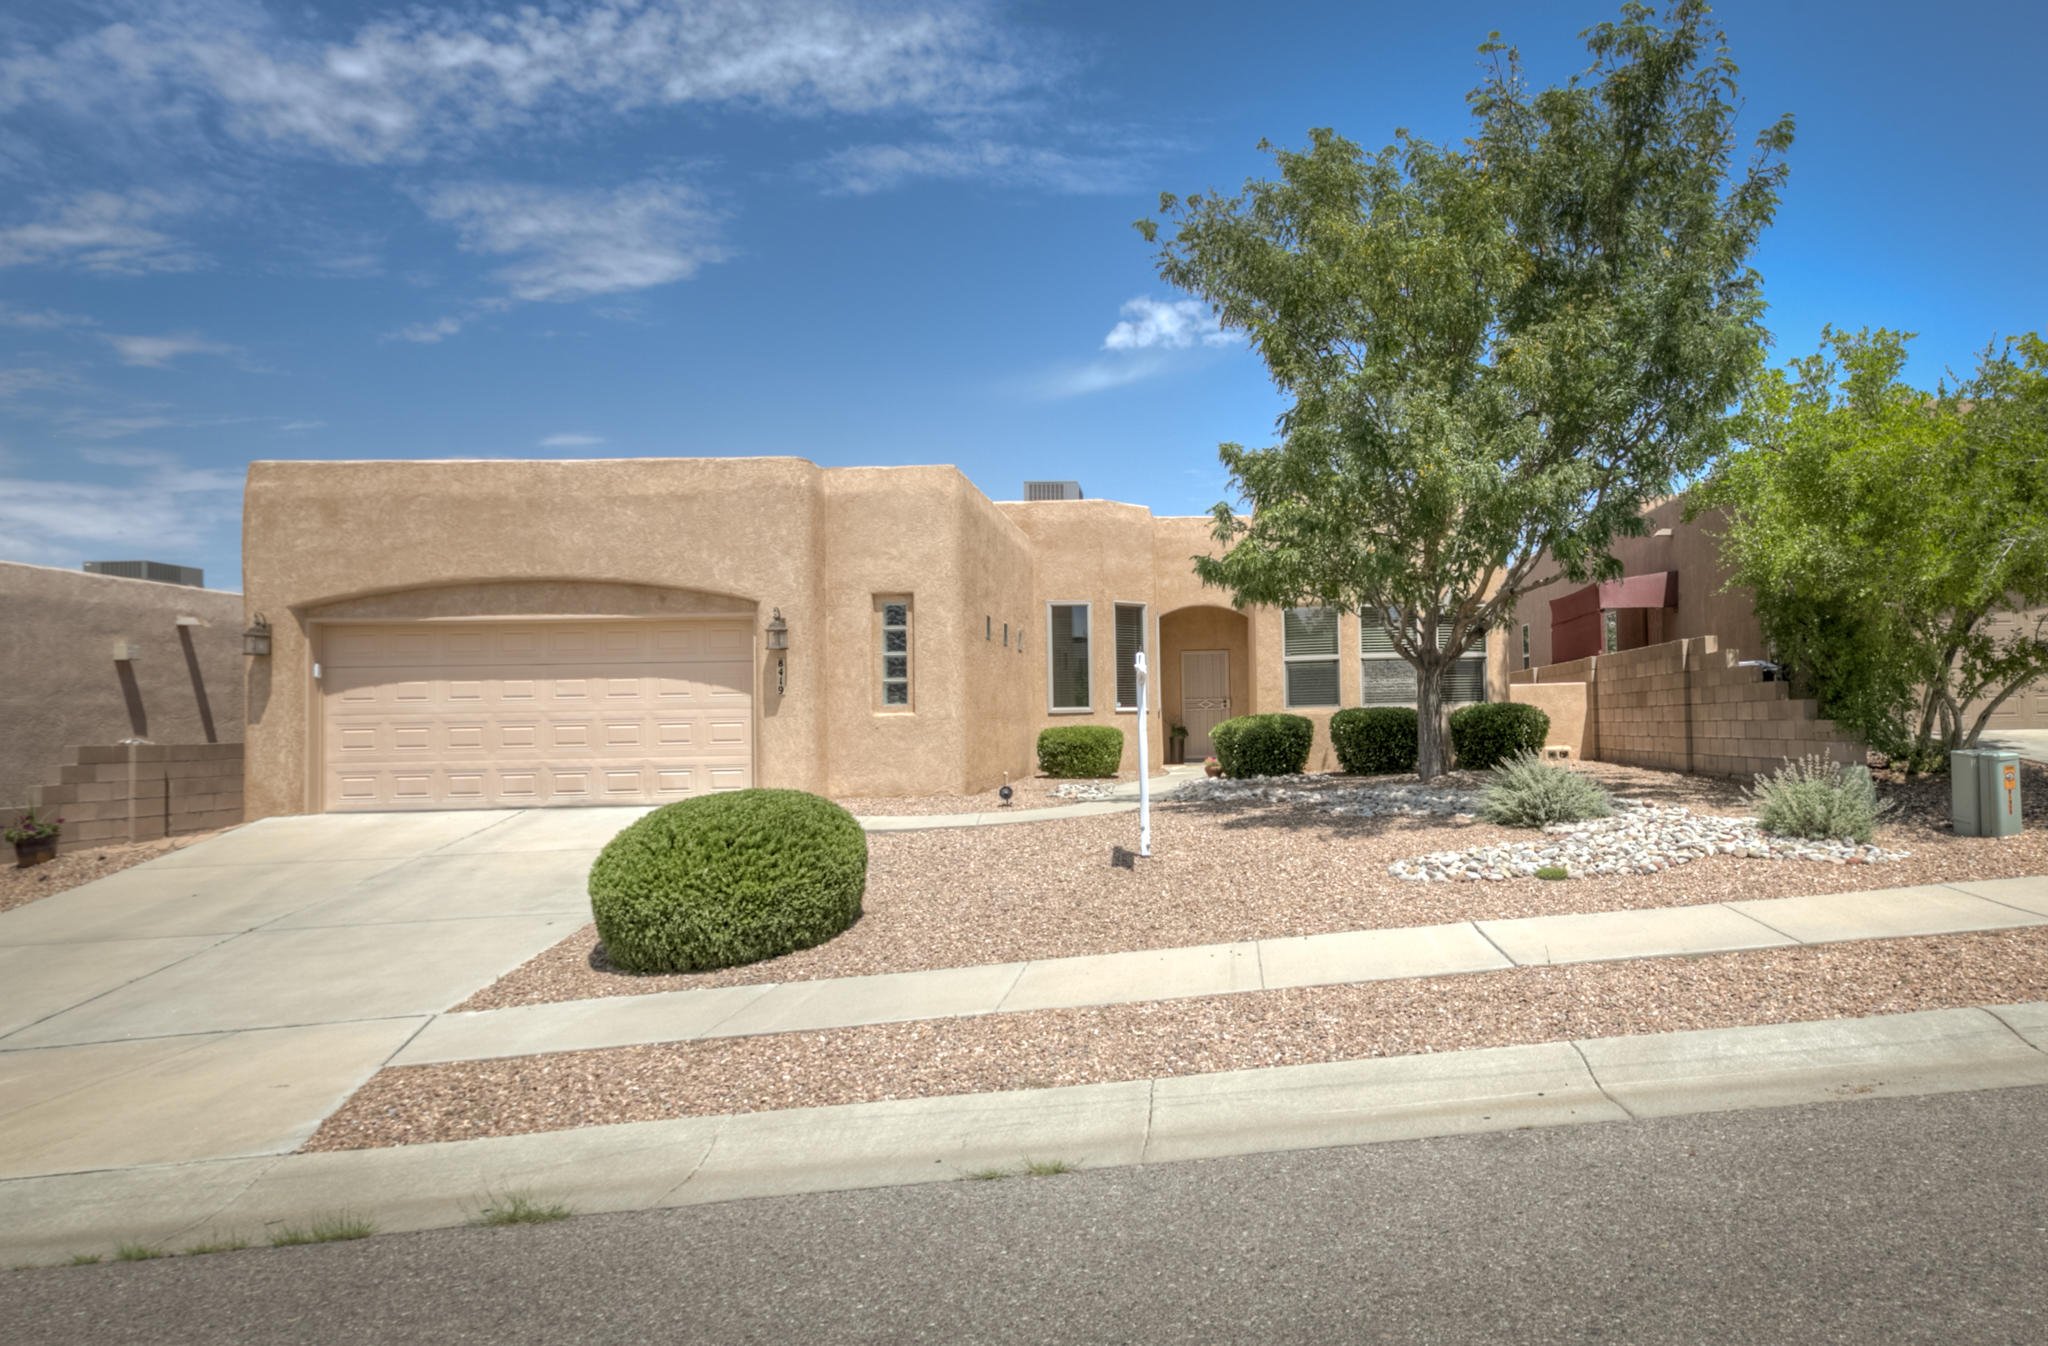 8419 DESERT SUNRISE Road NE Property Photo - Albuquerque, NM real estate listing